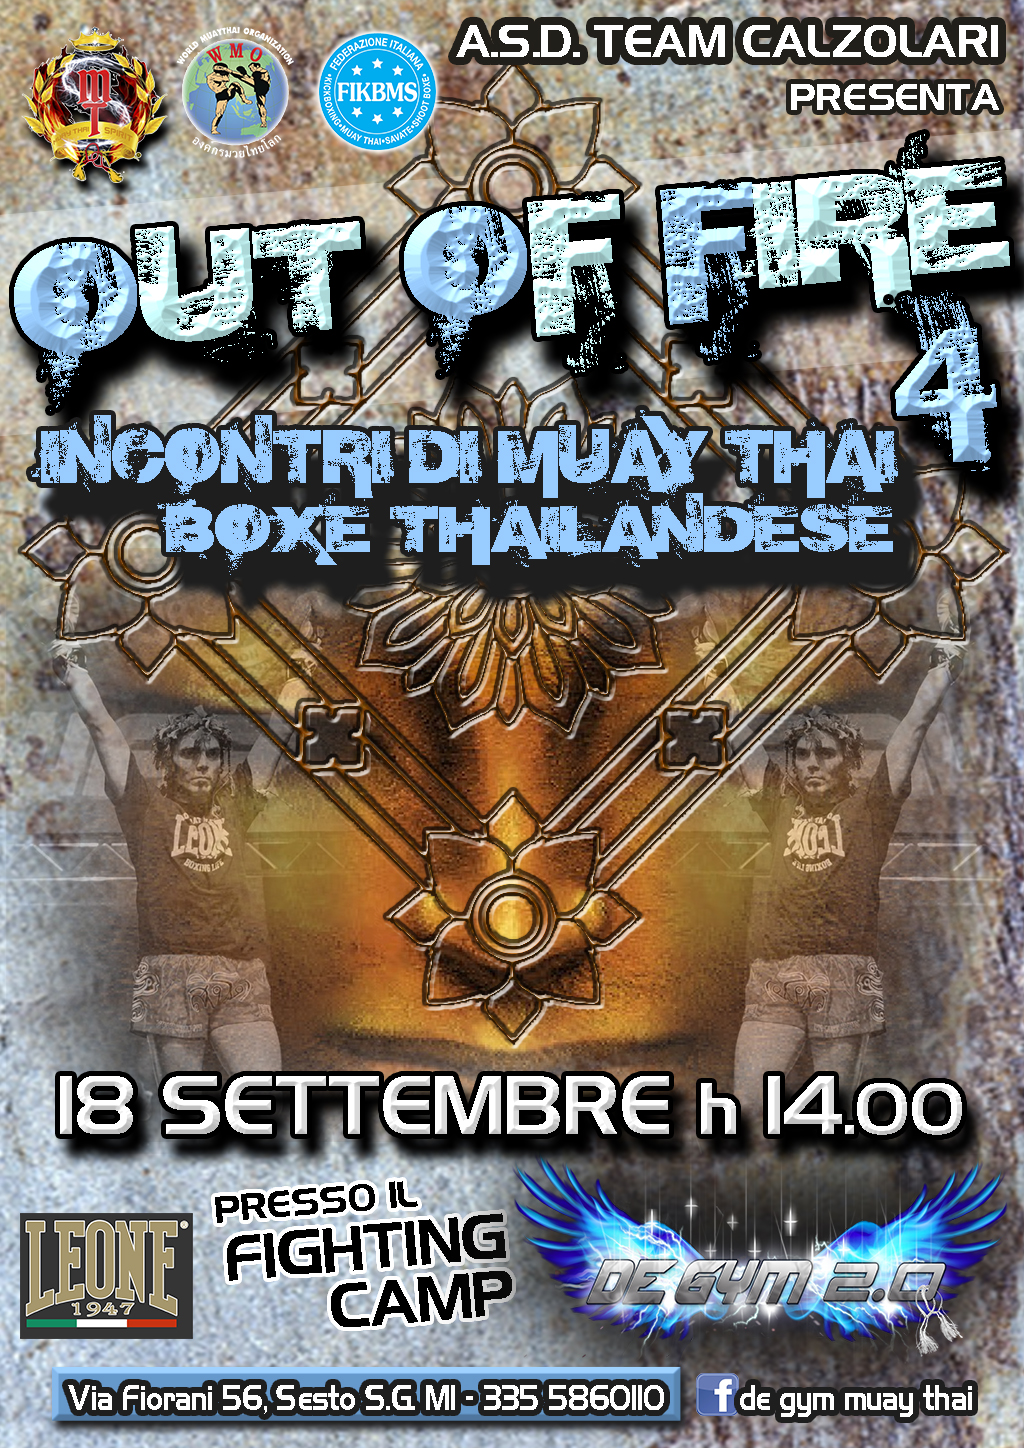 OUT OF FIRE 4